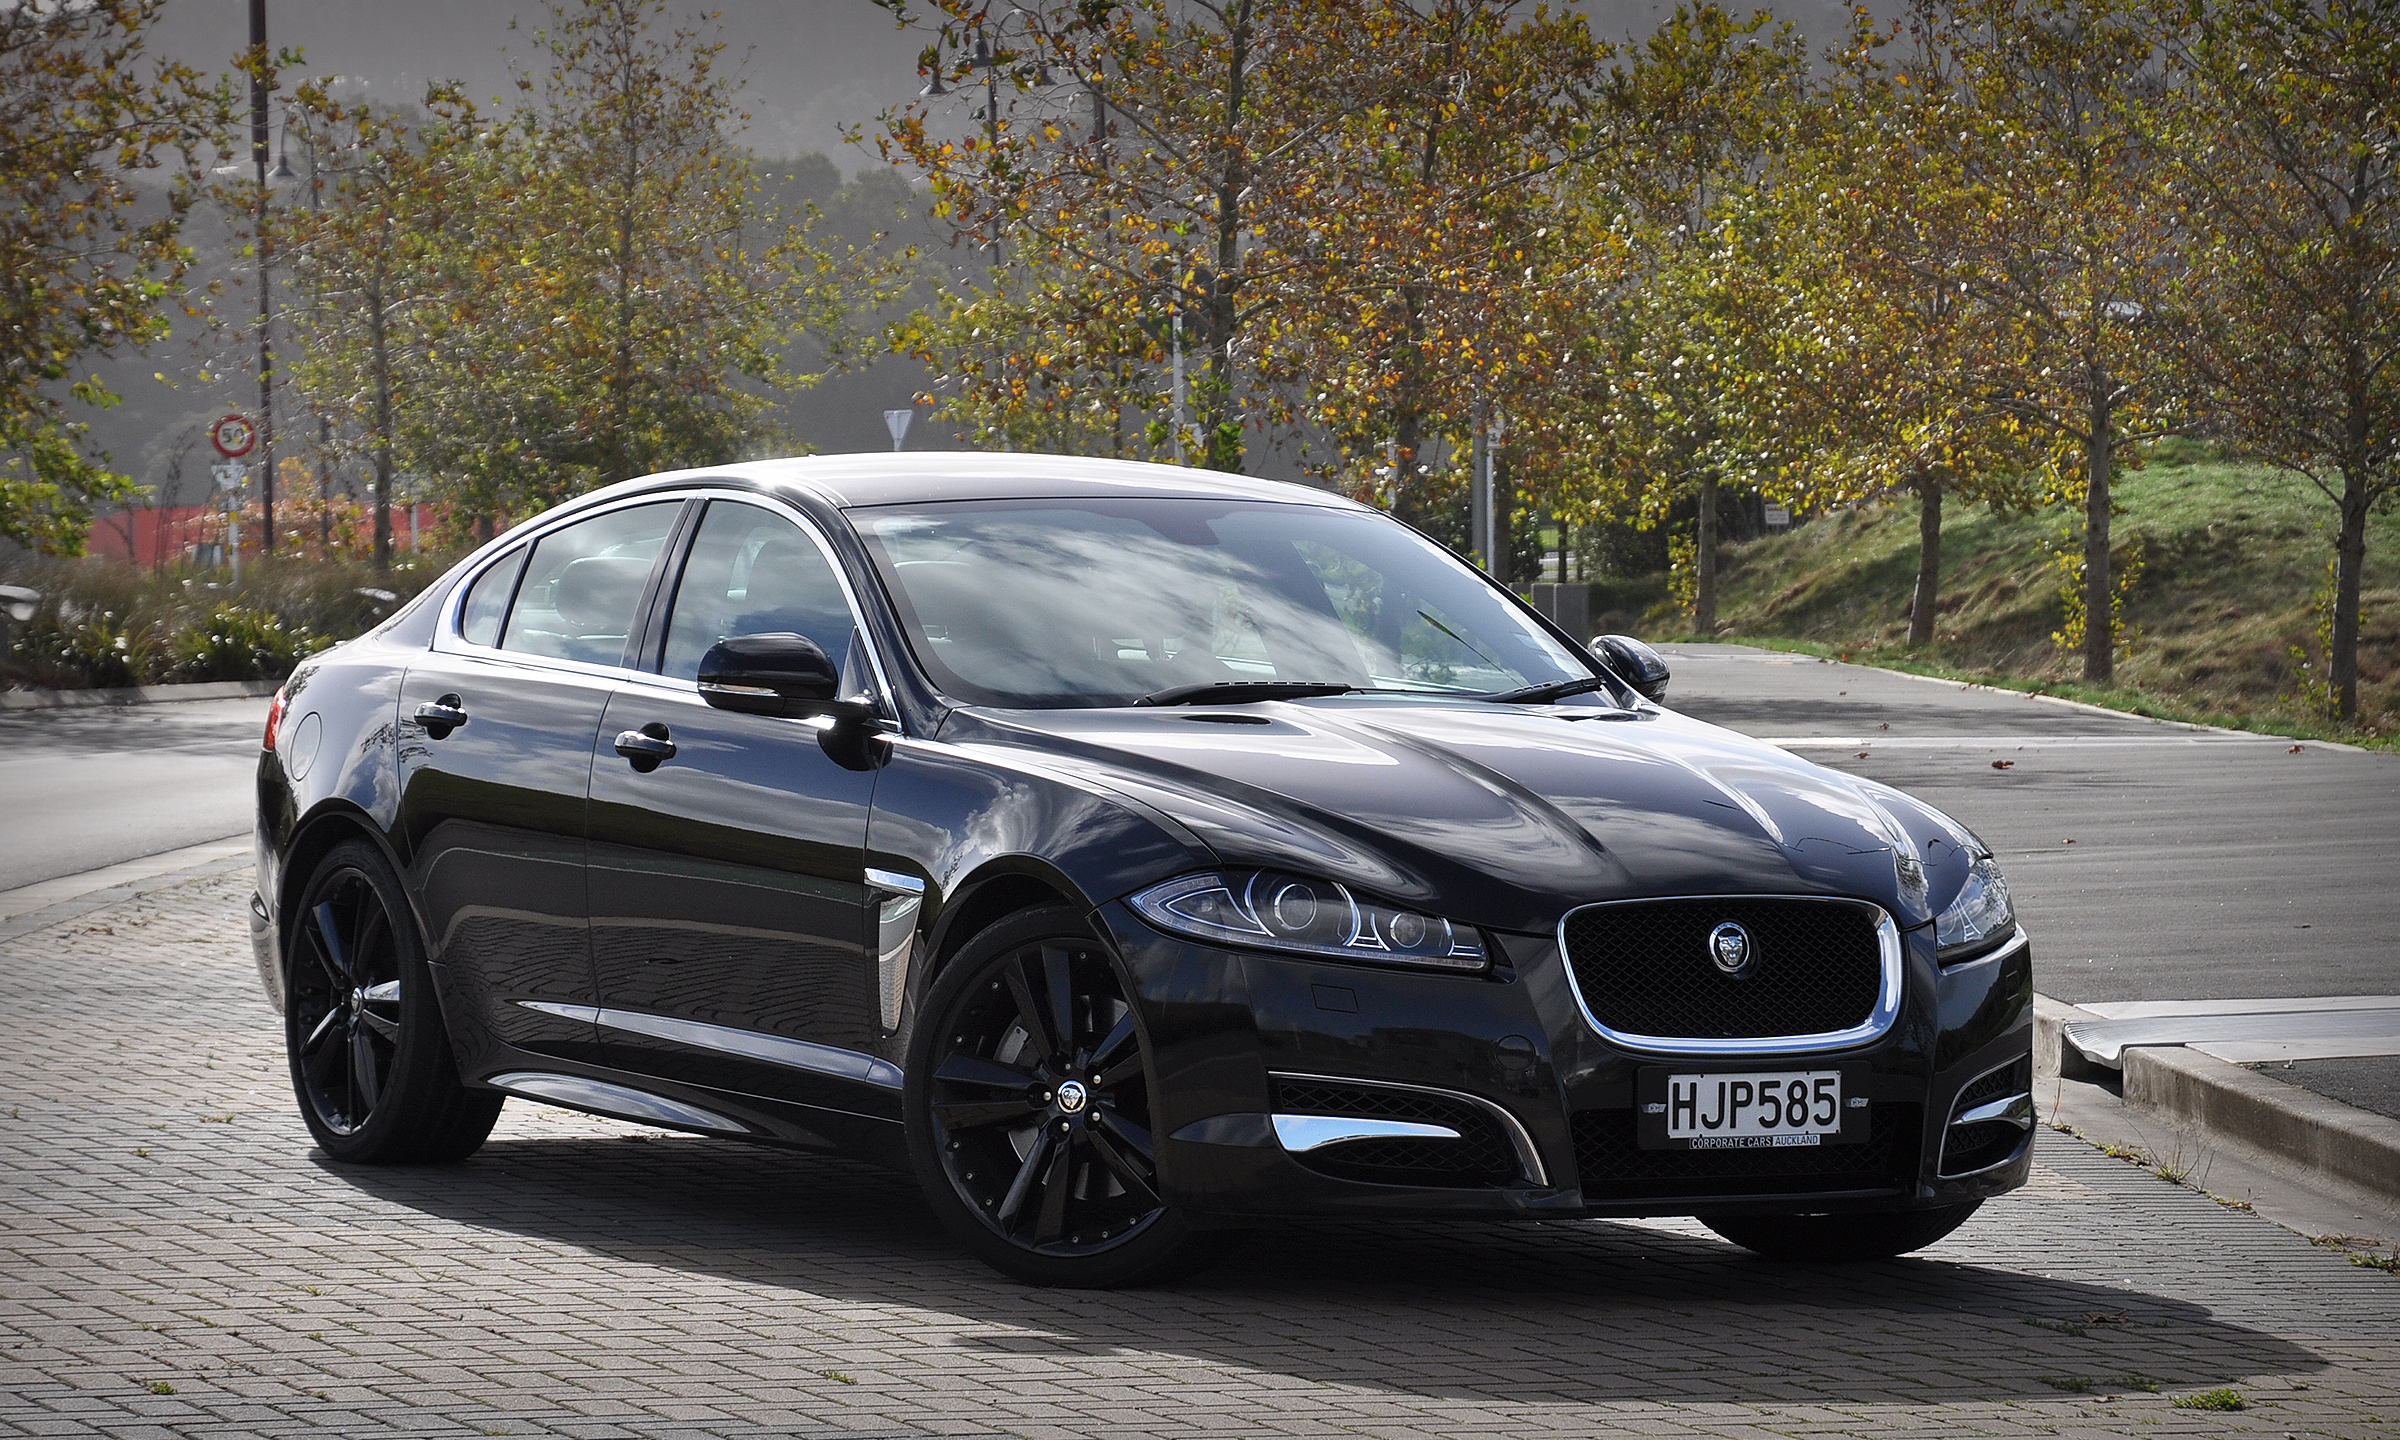 Jaguar XF S Premium Luxury 2013